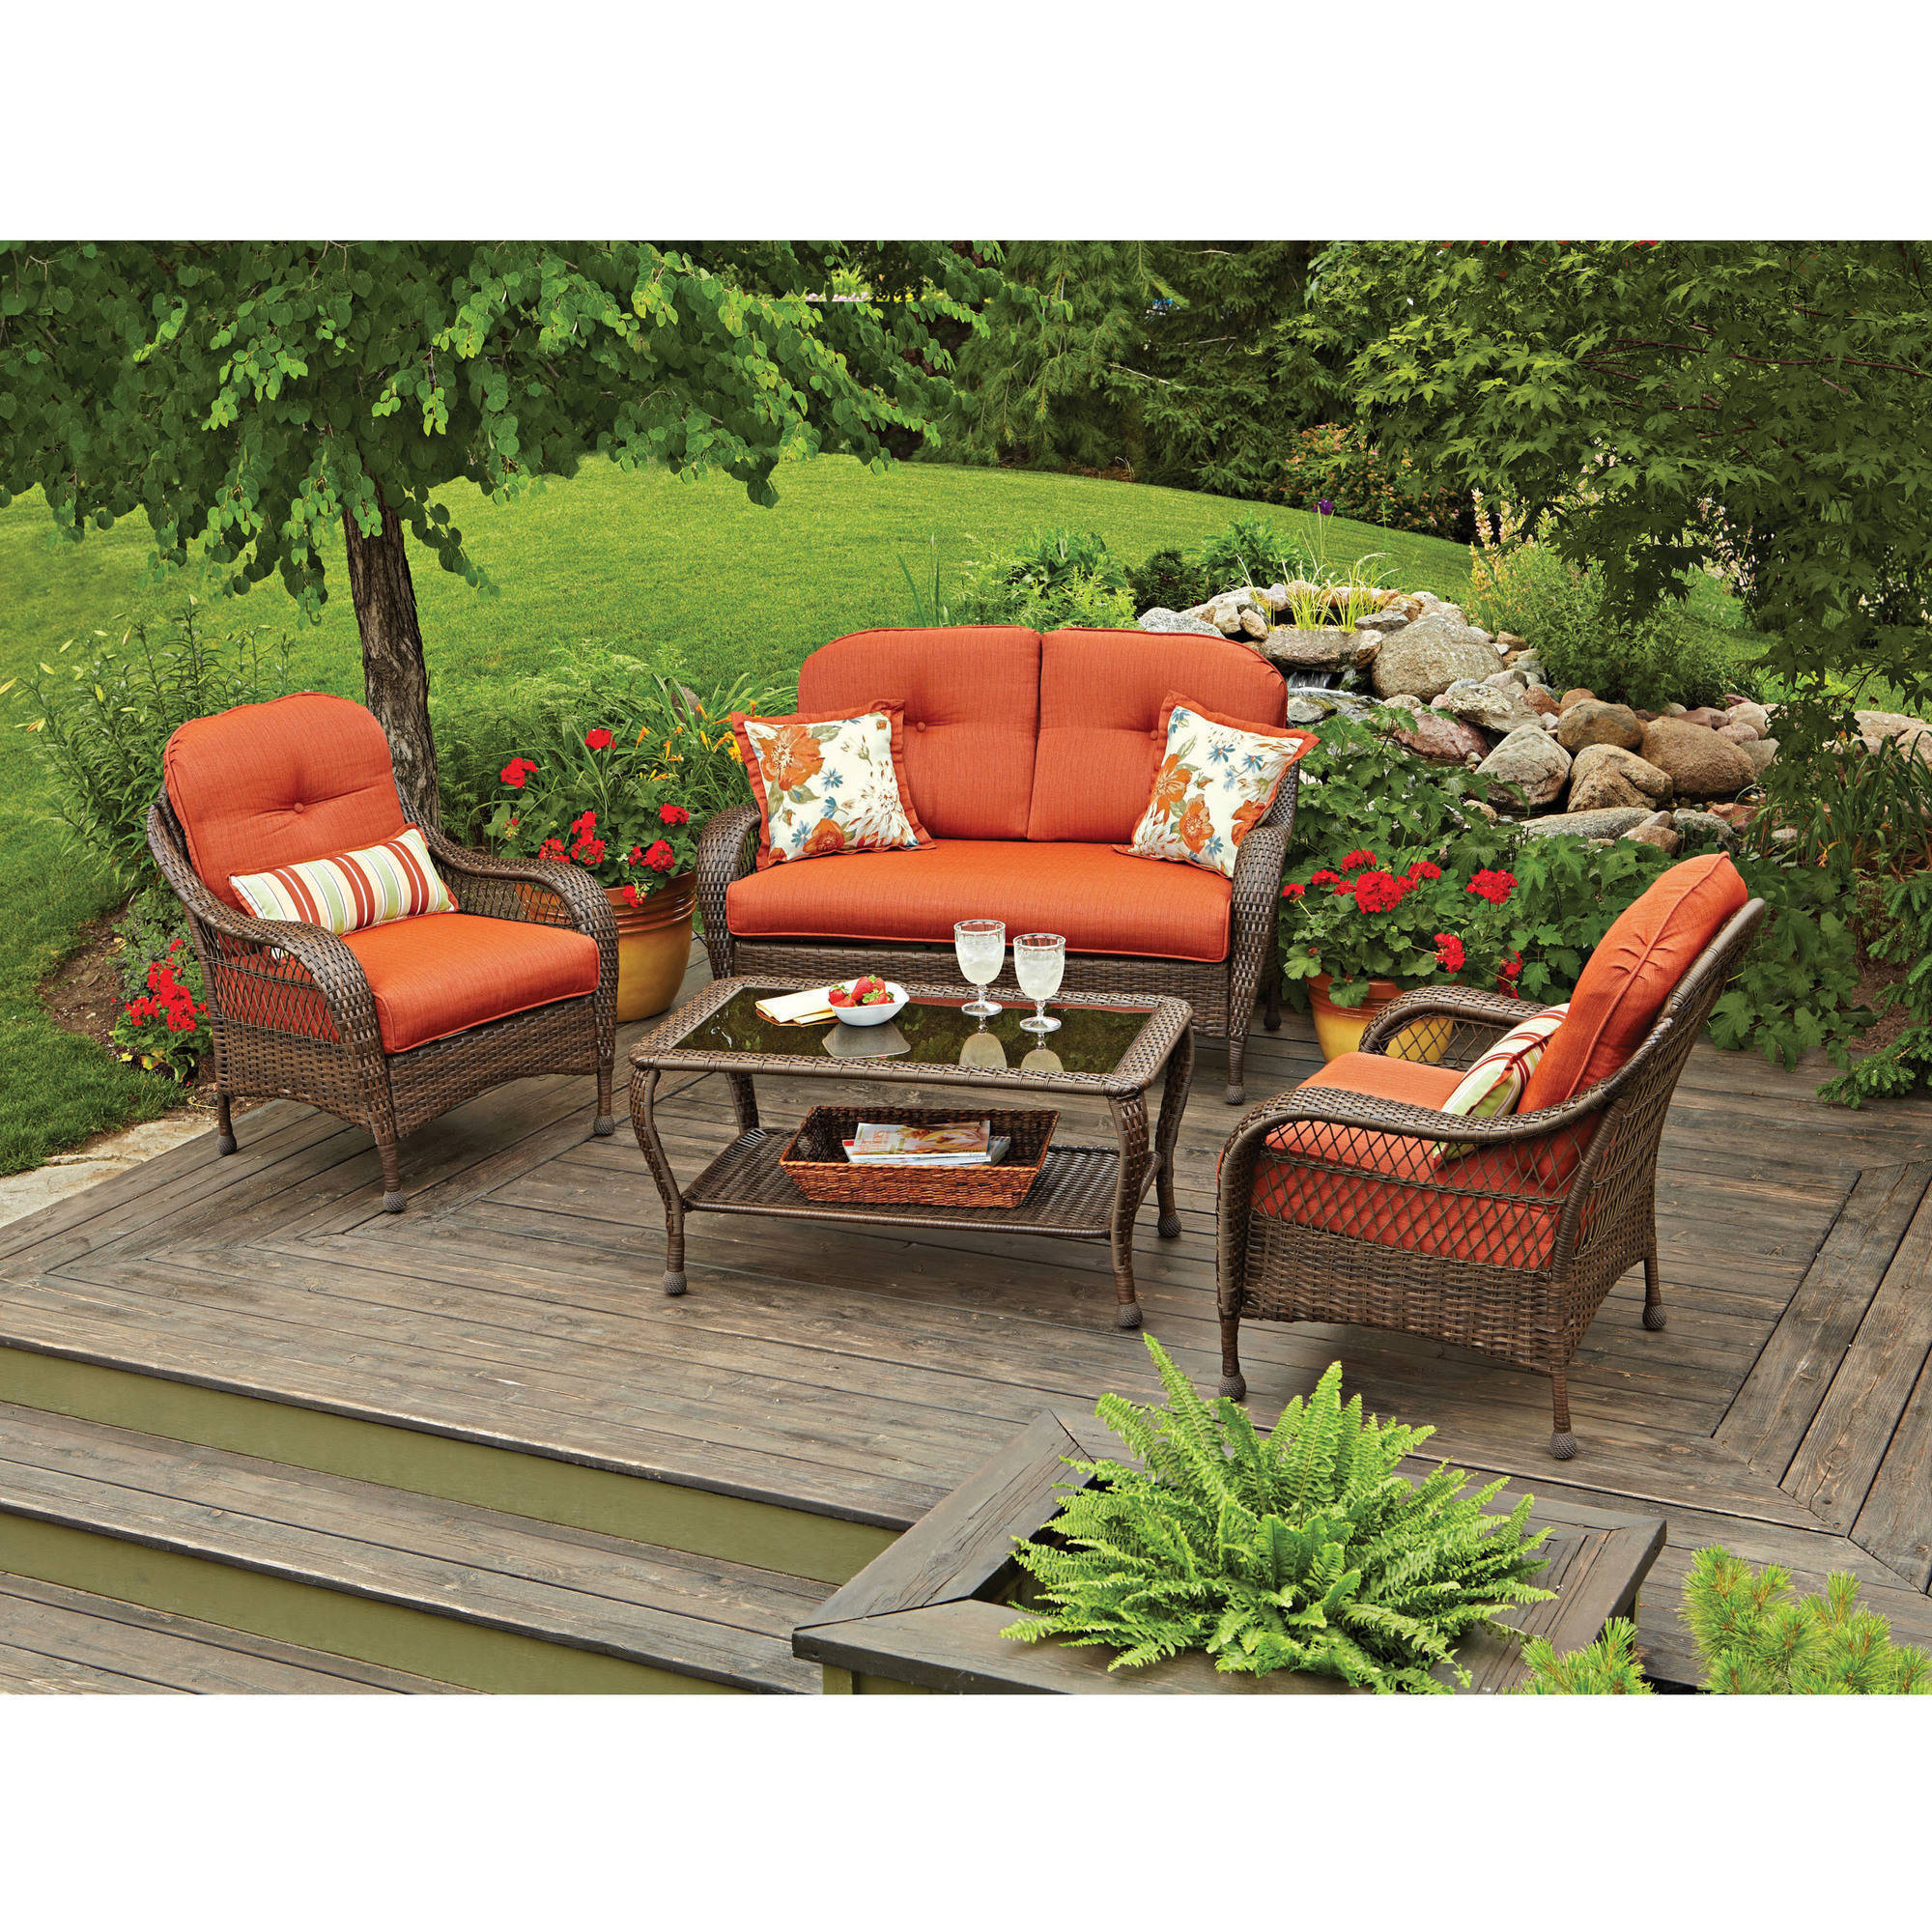 better homes and gardens azalea ridge 4 piece patio conversation set seats 4 walmartcom